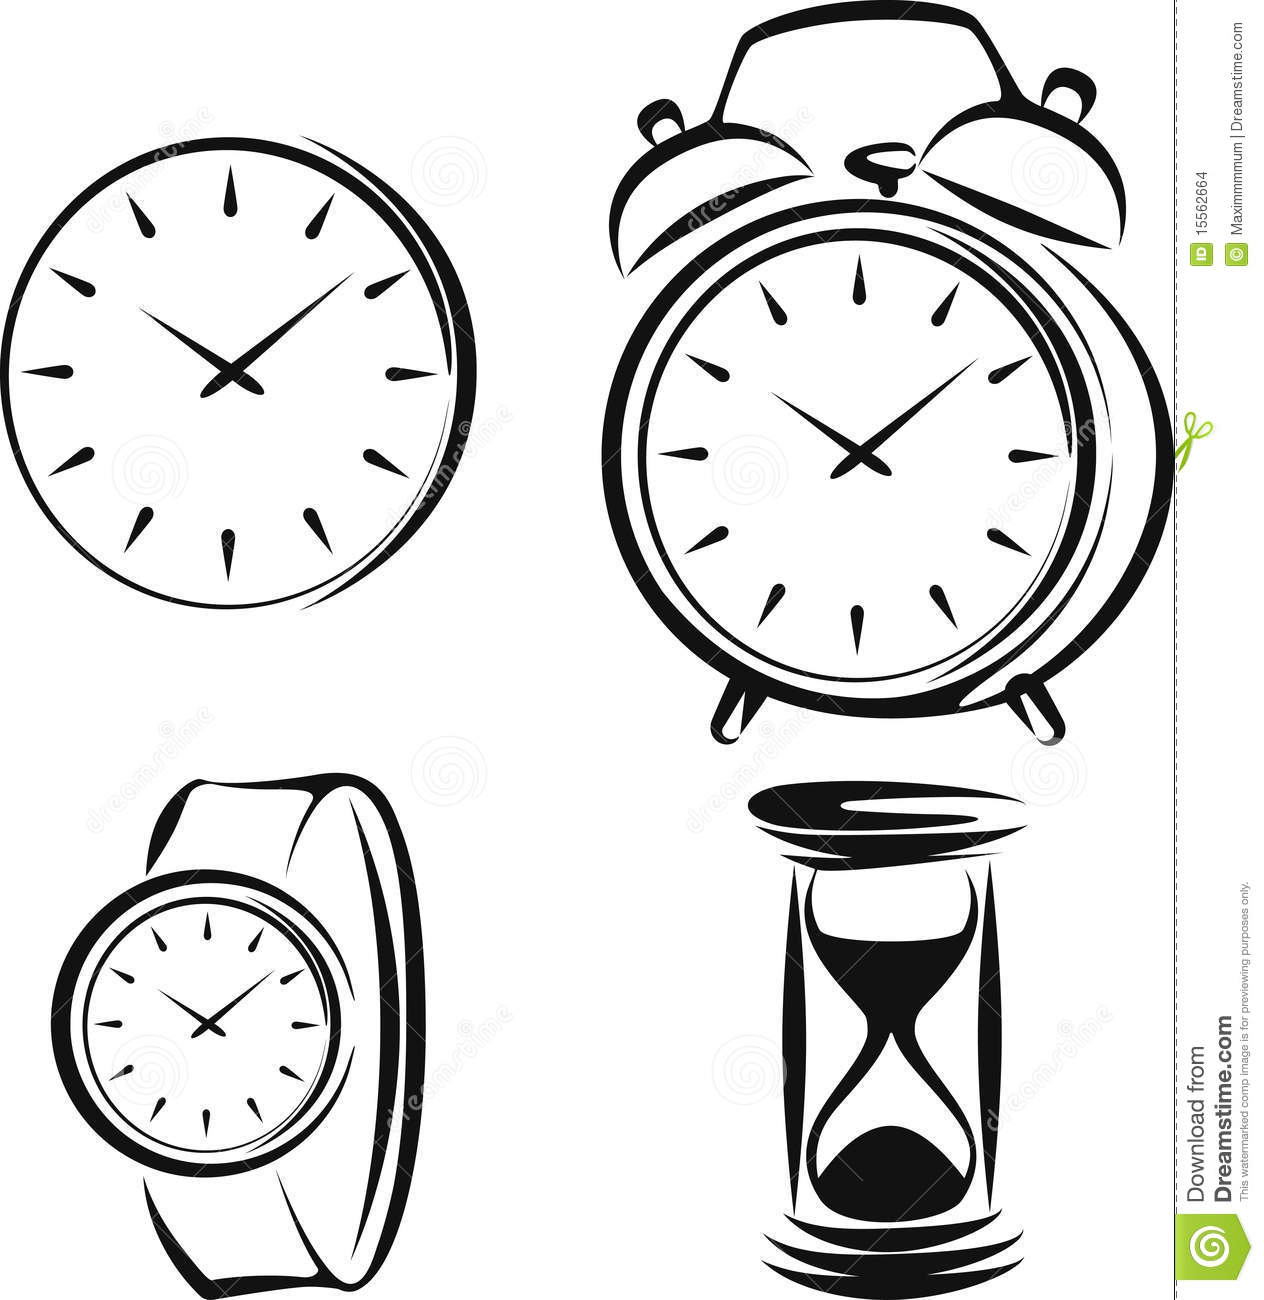 types of clocks images